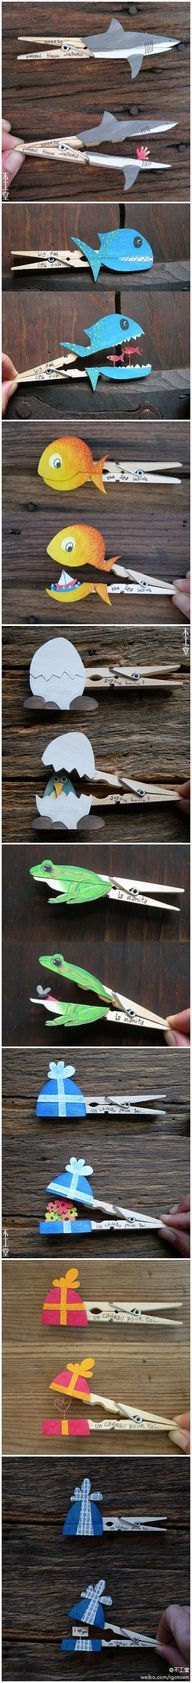 Clothes pin crafts!